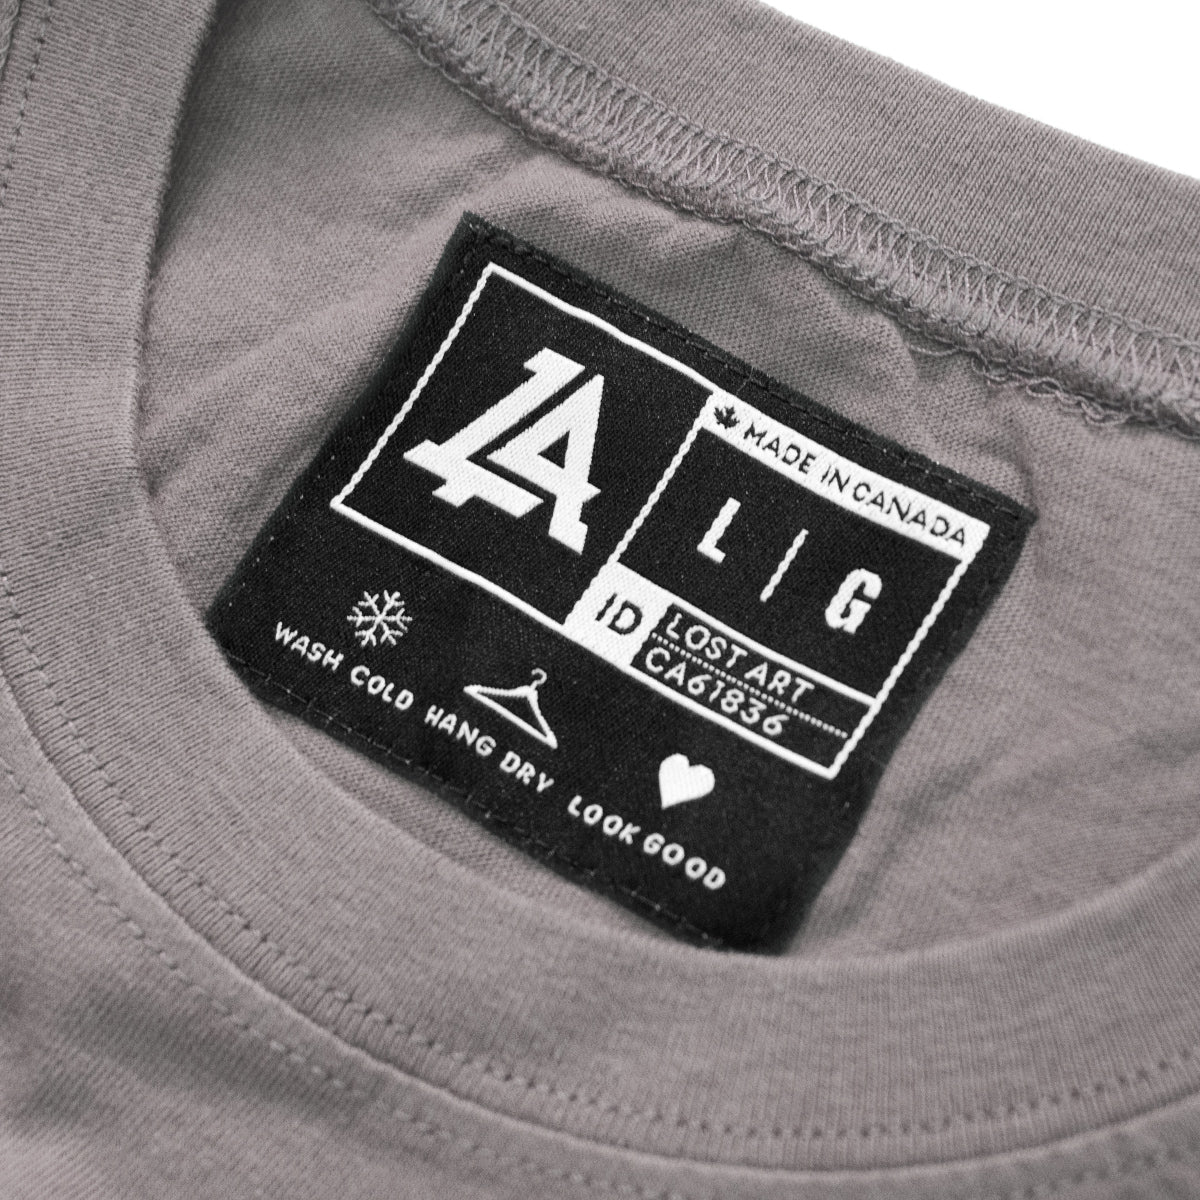 Lost Art Canada - black on slate grey monogram logo tee inside tag view